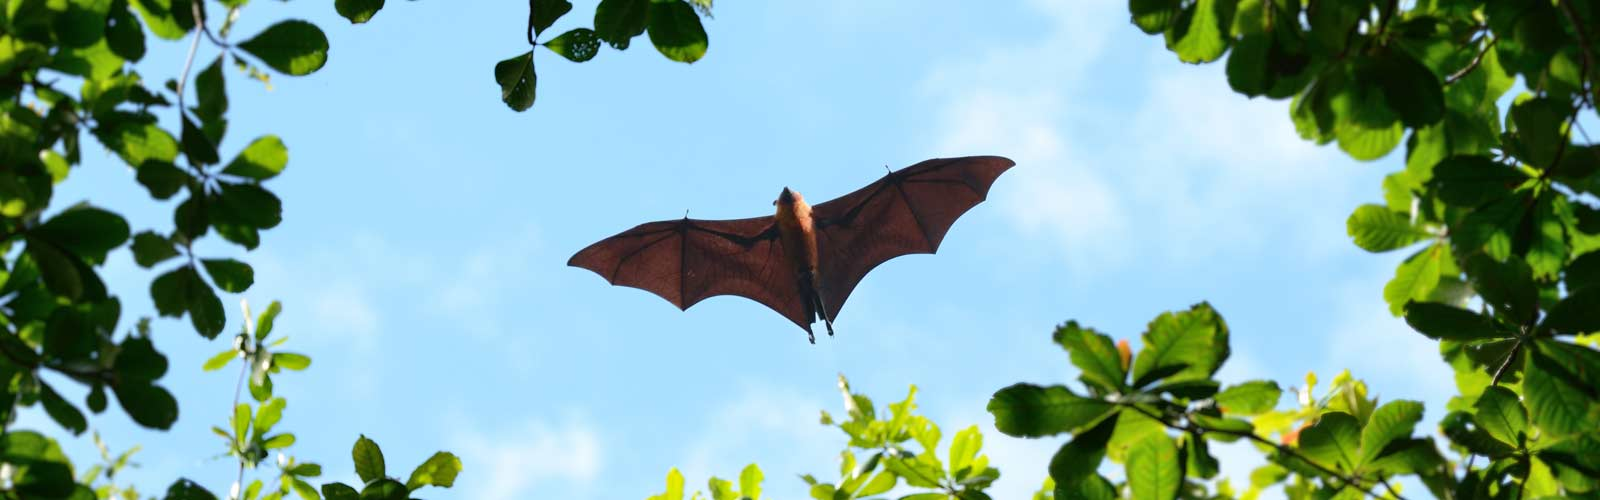 Is Bat Guano Dangerous?